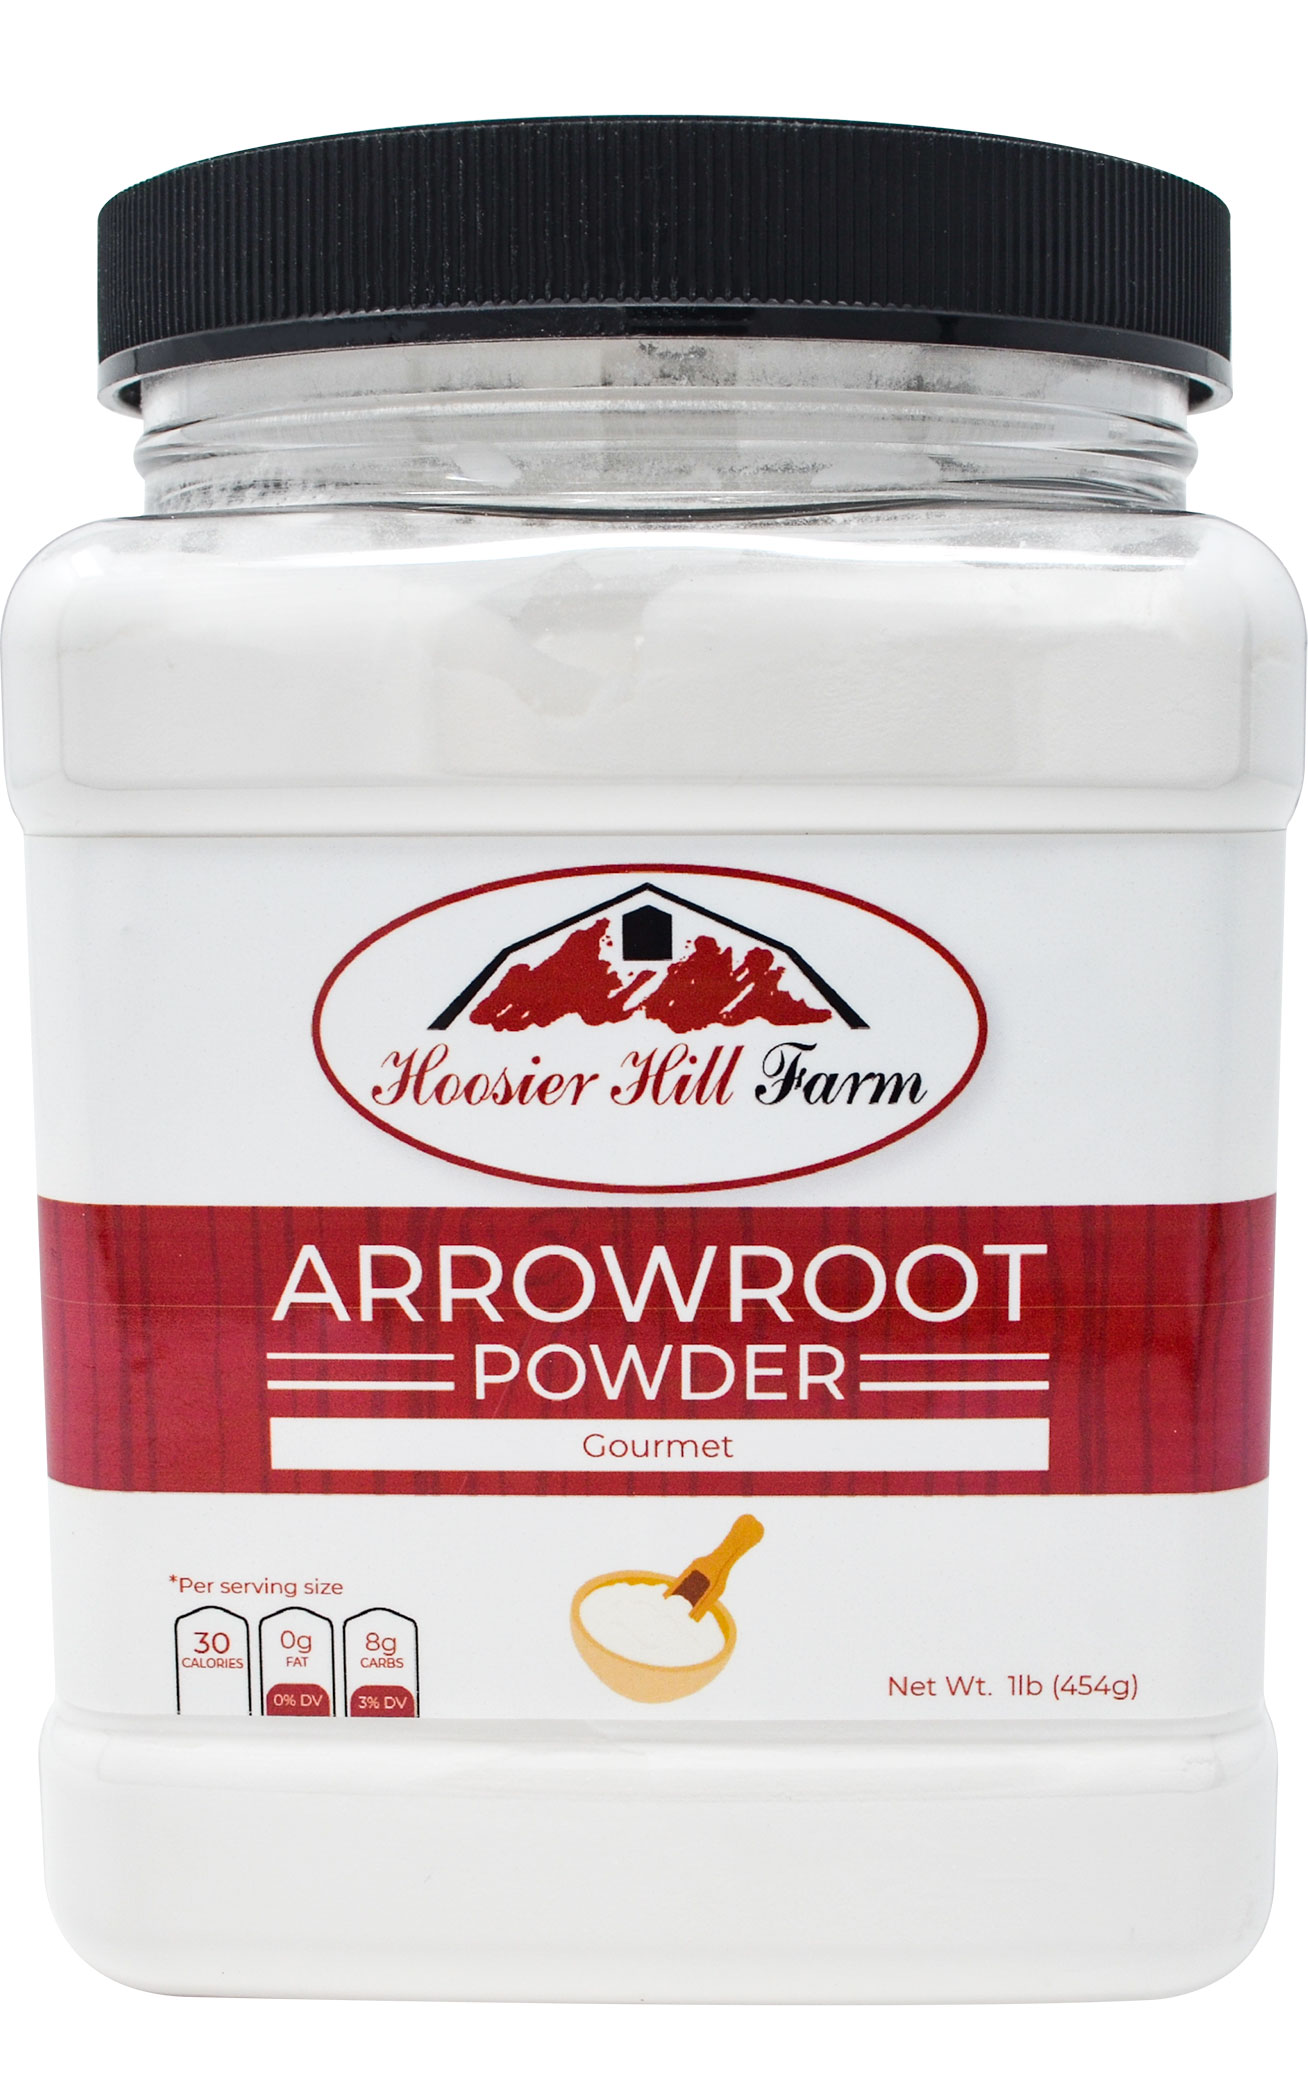 Hoosier Hill Farm Premium Arrowroot Powder, 1 Lb.